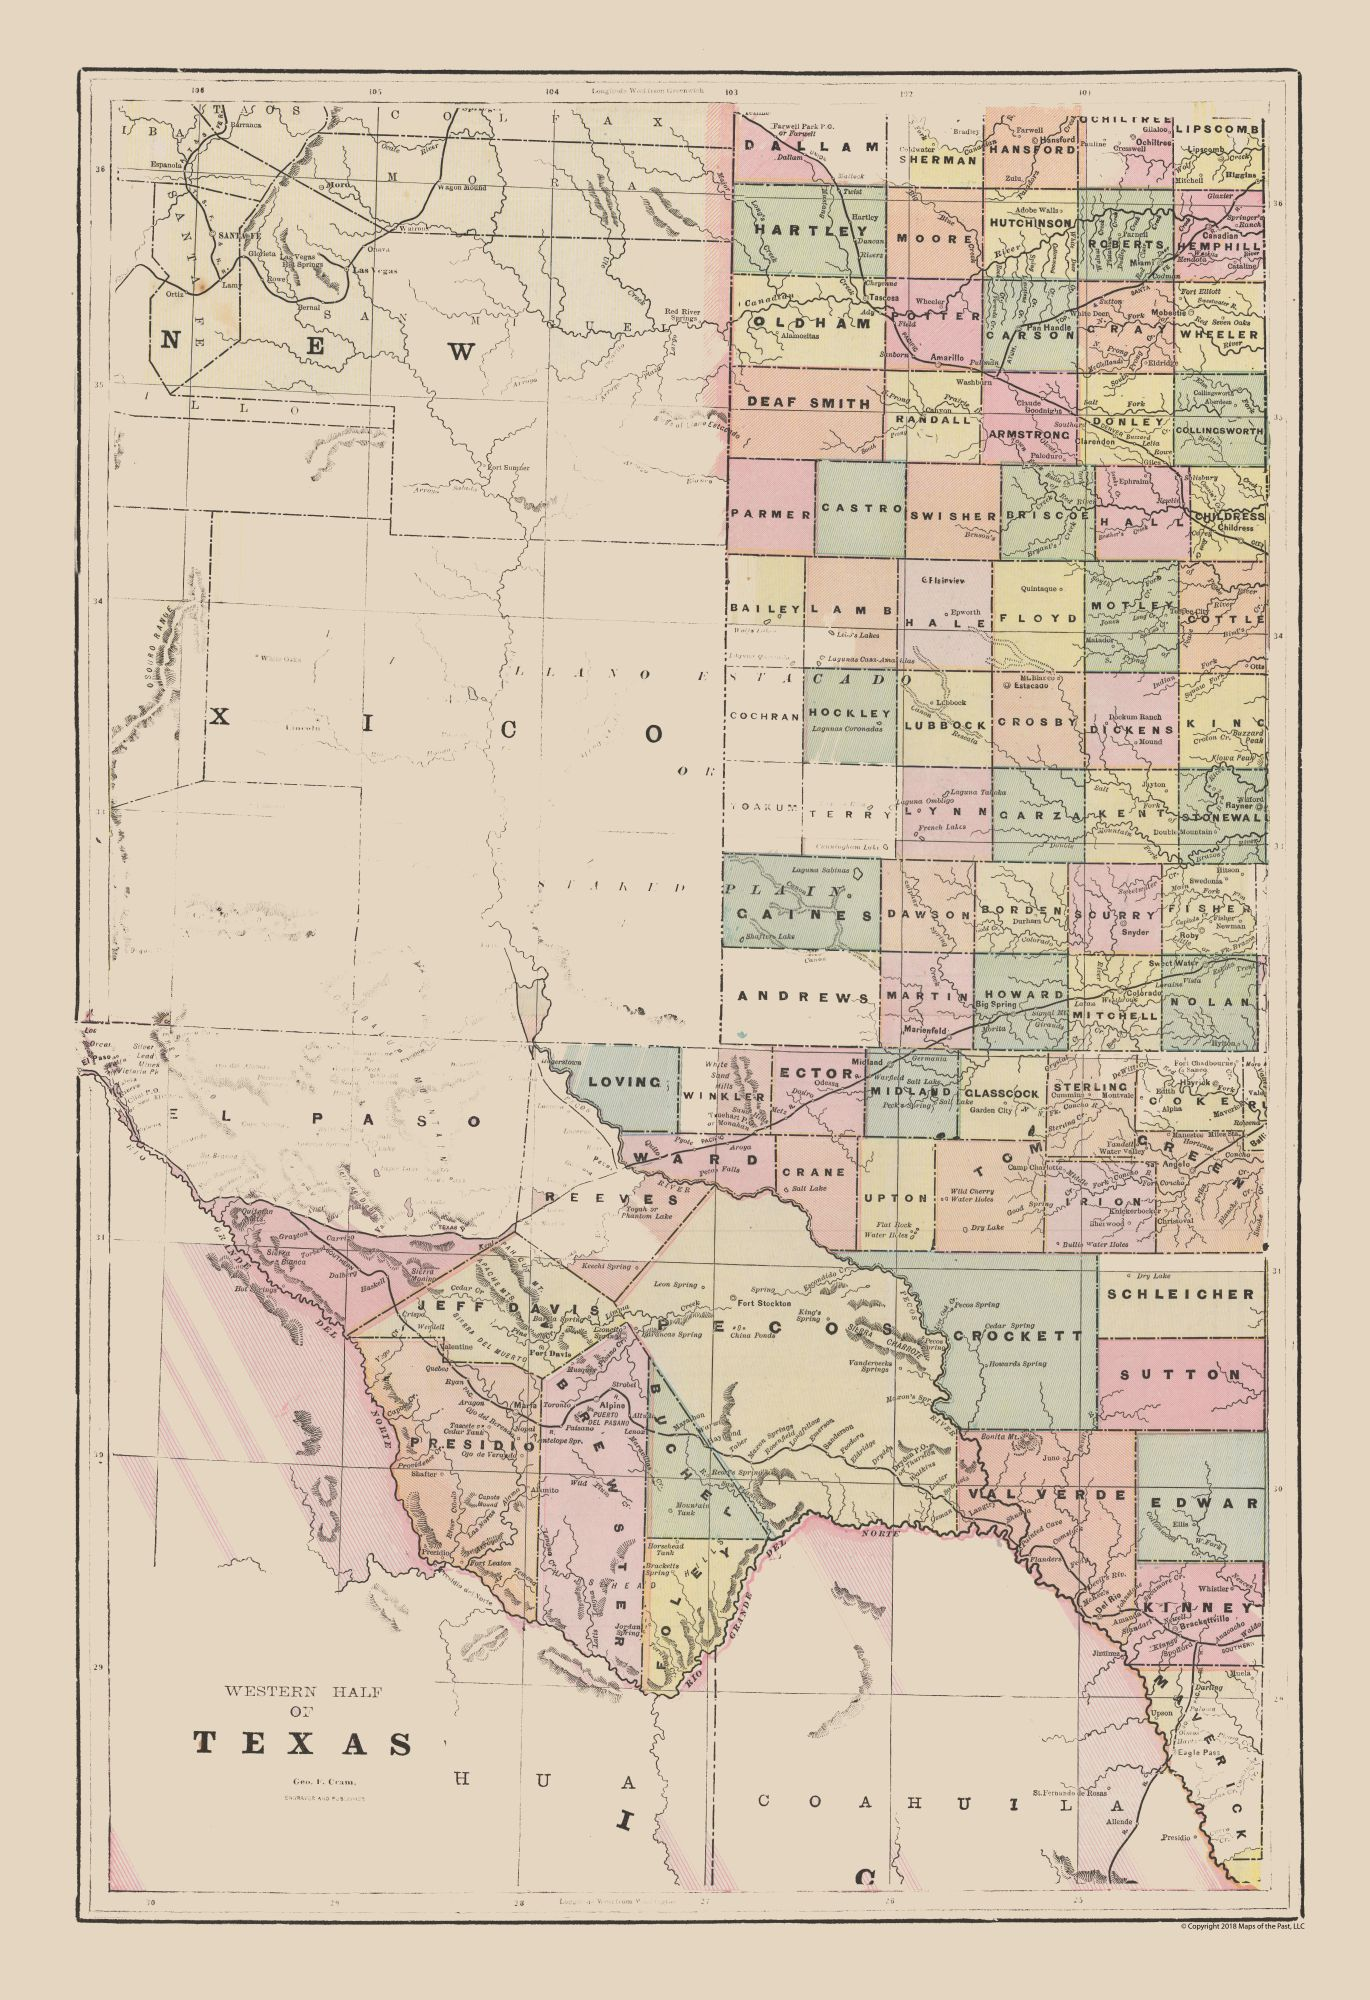 Map Of Western Texas.Old State Map Western Texas Cram 1892 23 X 33 58